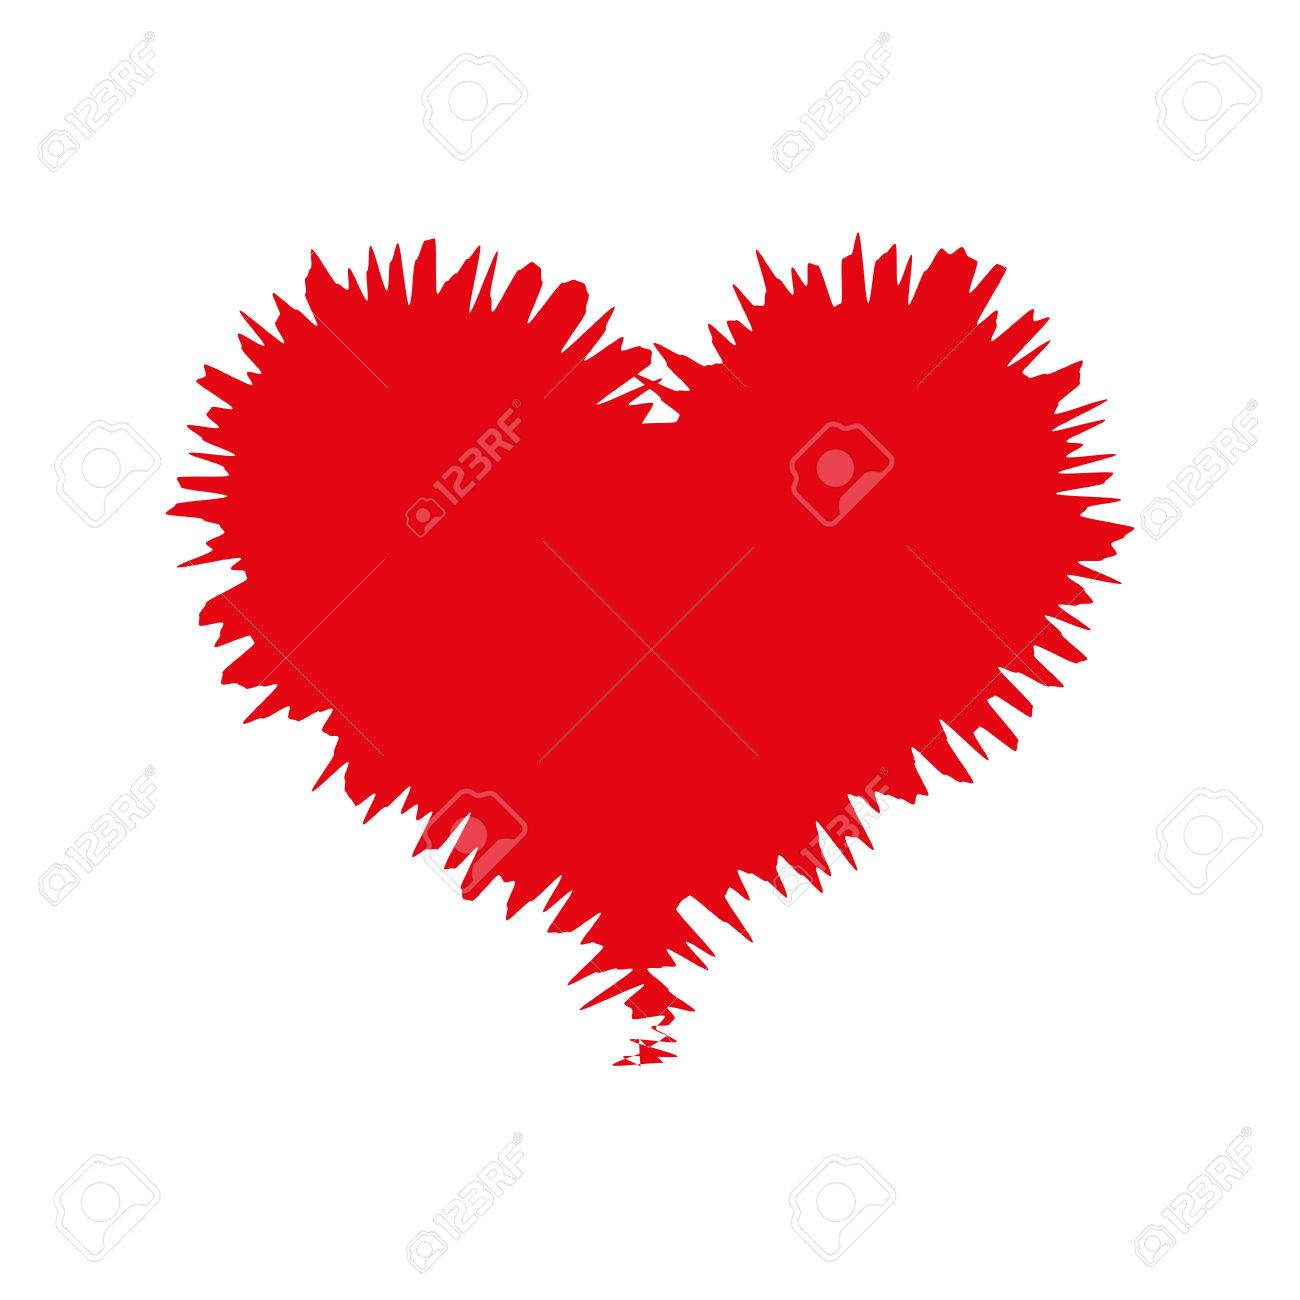 Heart Love Romance Passion Amour Red Sketch Vector Illustration Royalty Free Cliparts Vectors And Stock Illustration Image 61694400